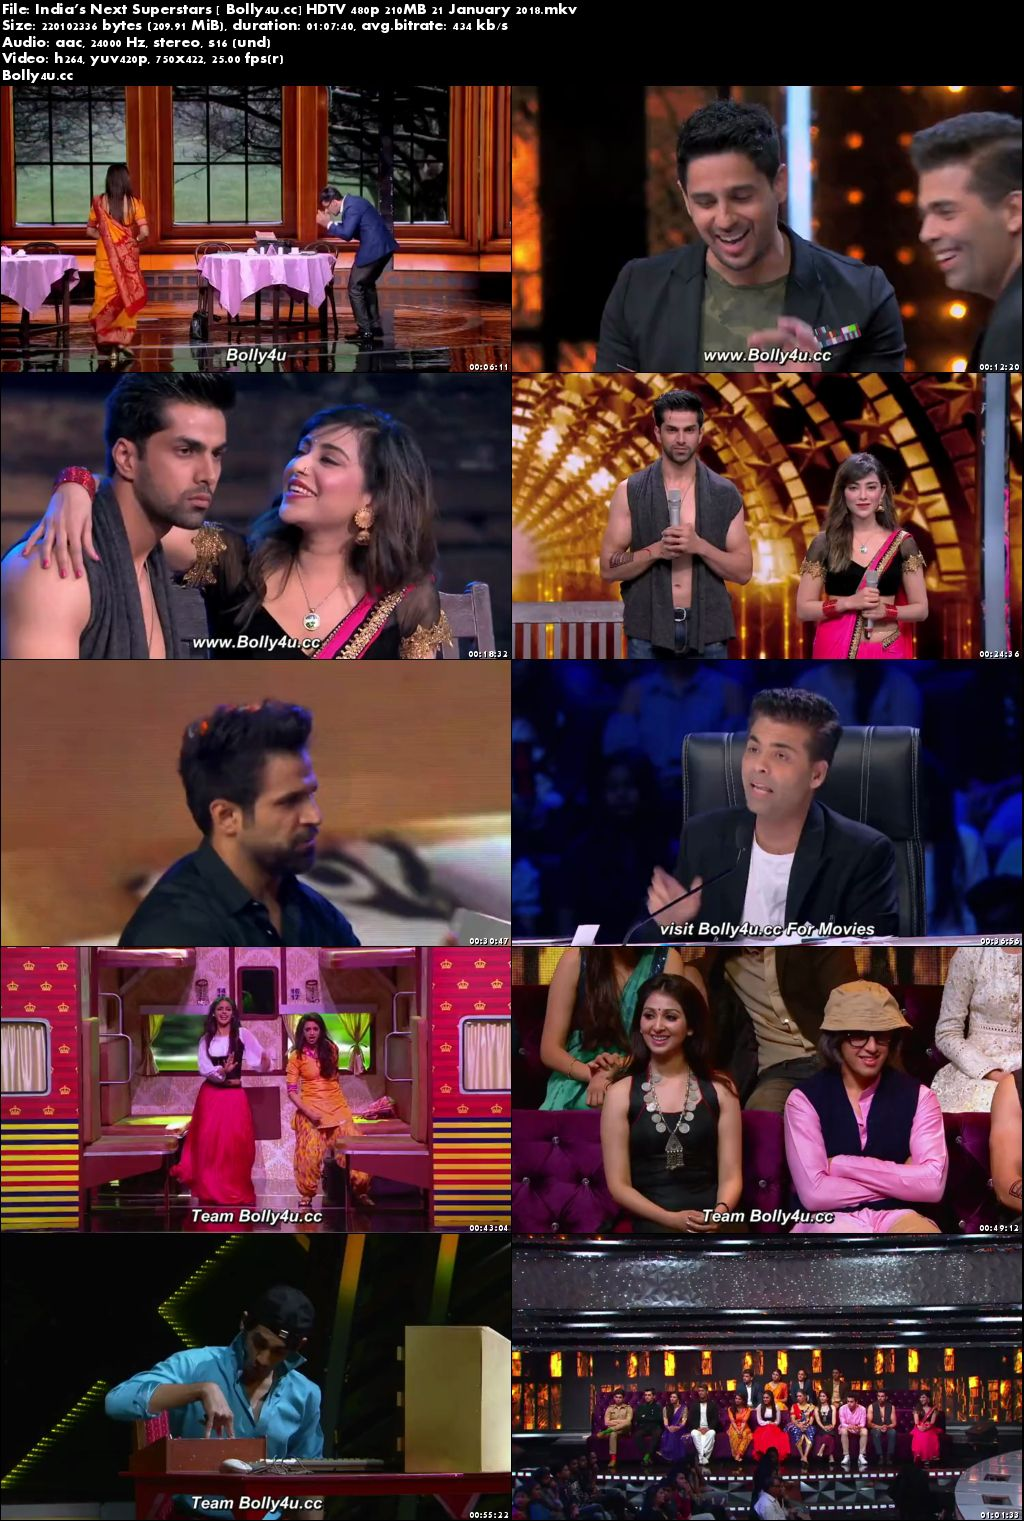 India's Next Superstars HDTV 480p 200MB 21 January 2018 Download